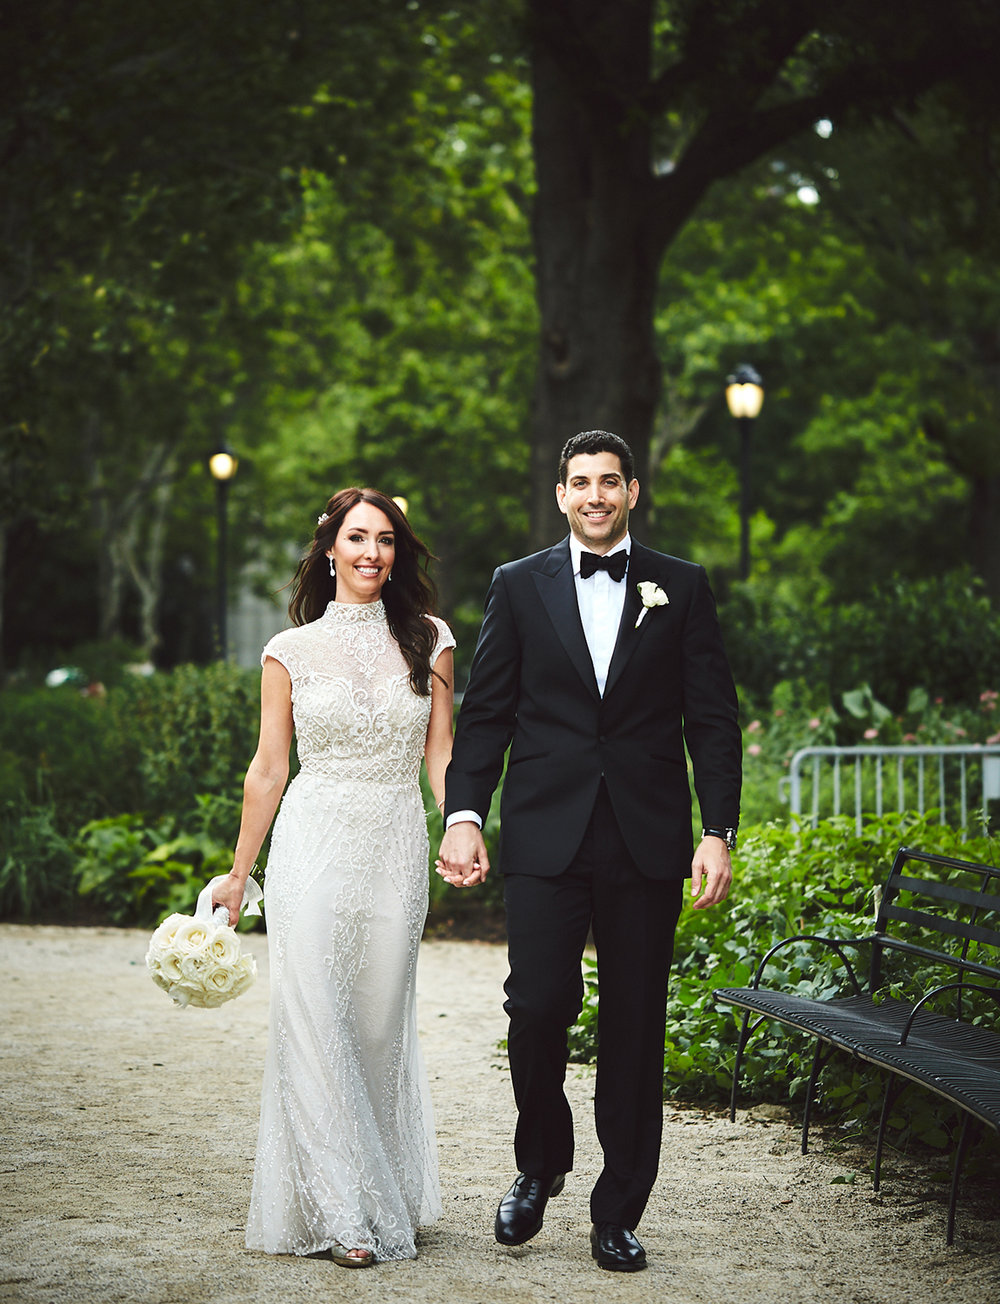 180622_BatteryGardensWeddingPhotography_NYCWeddingPhotographer_BriJohnsonWeddings_0064.jpg